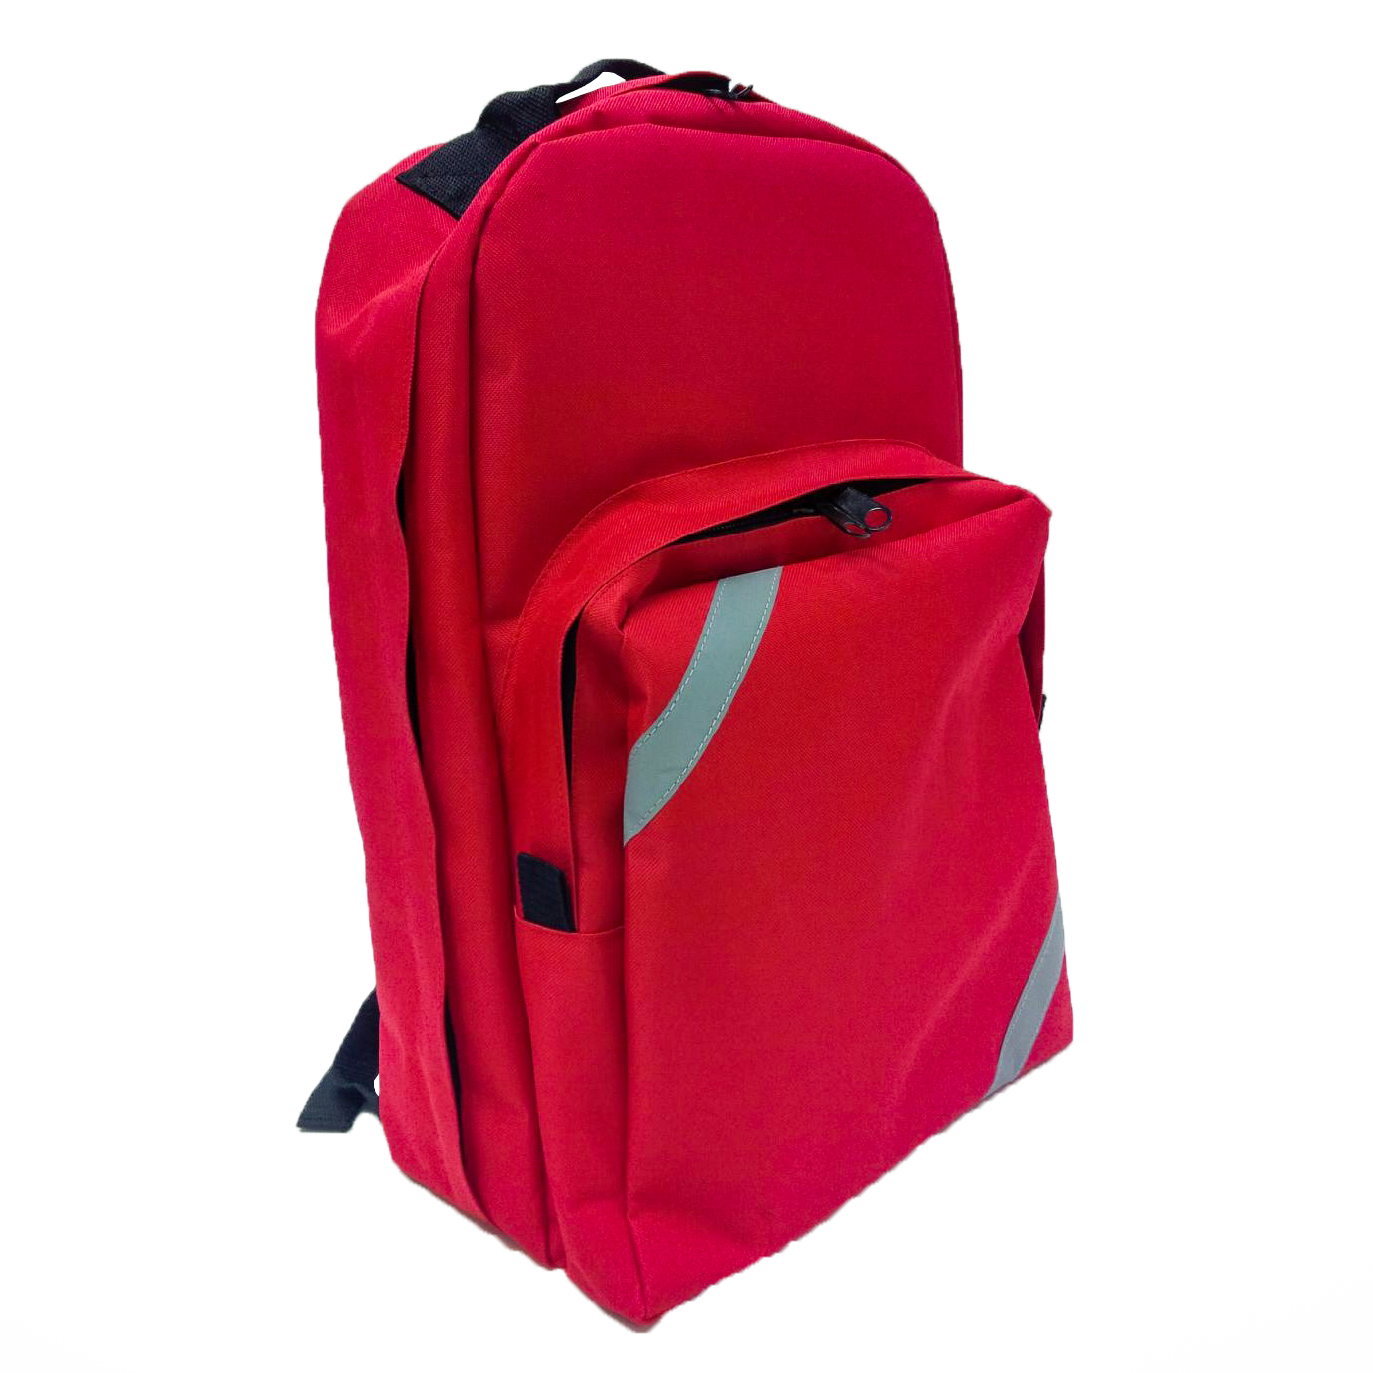 Red Softpack First Aid Backpack>